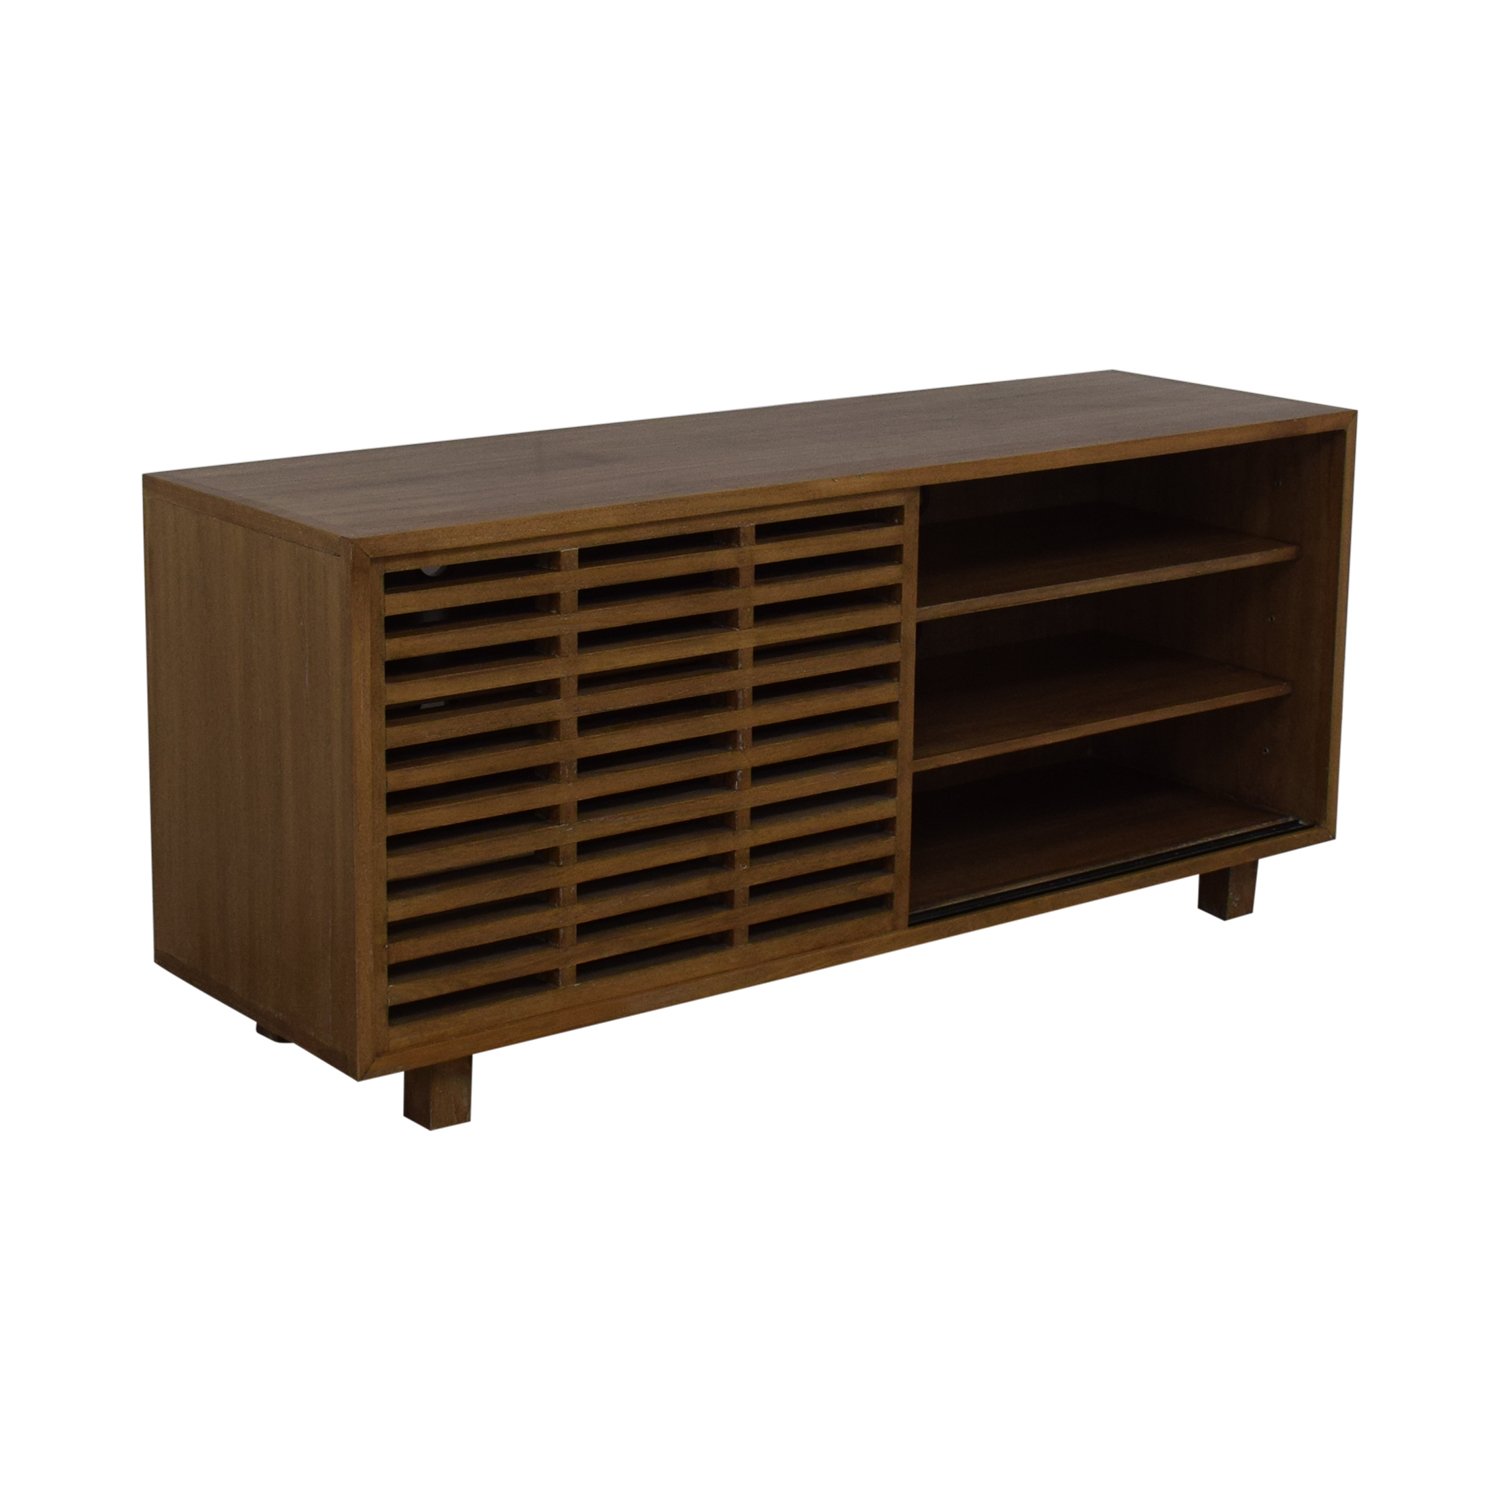 buy OLY Studio Dylan Contemporary Media Unit Oly Studio Media Units